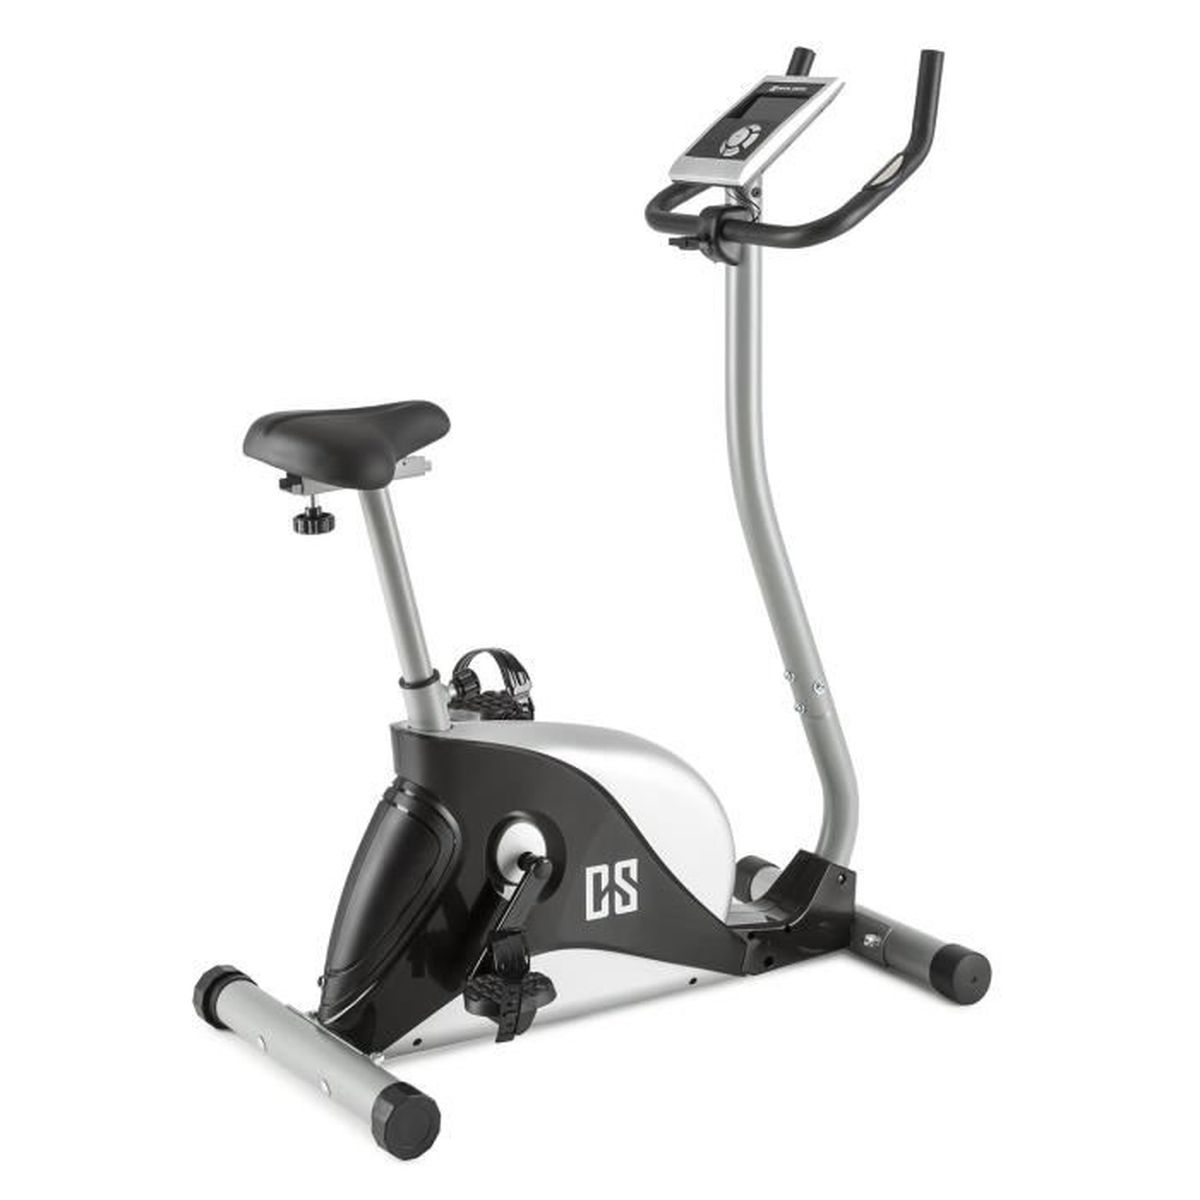 Capital sports cozzil cardiobike v lo d 39 appartement ergom tre pulsom tre - Cdiscount velo appartement ...